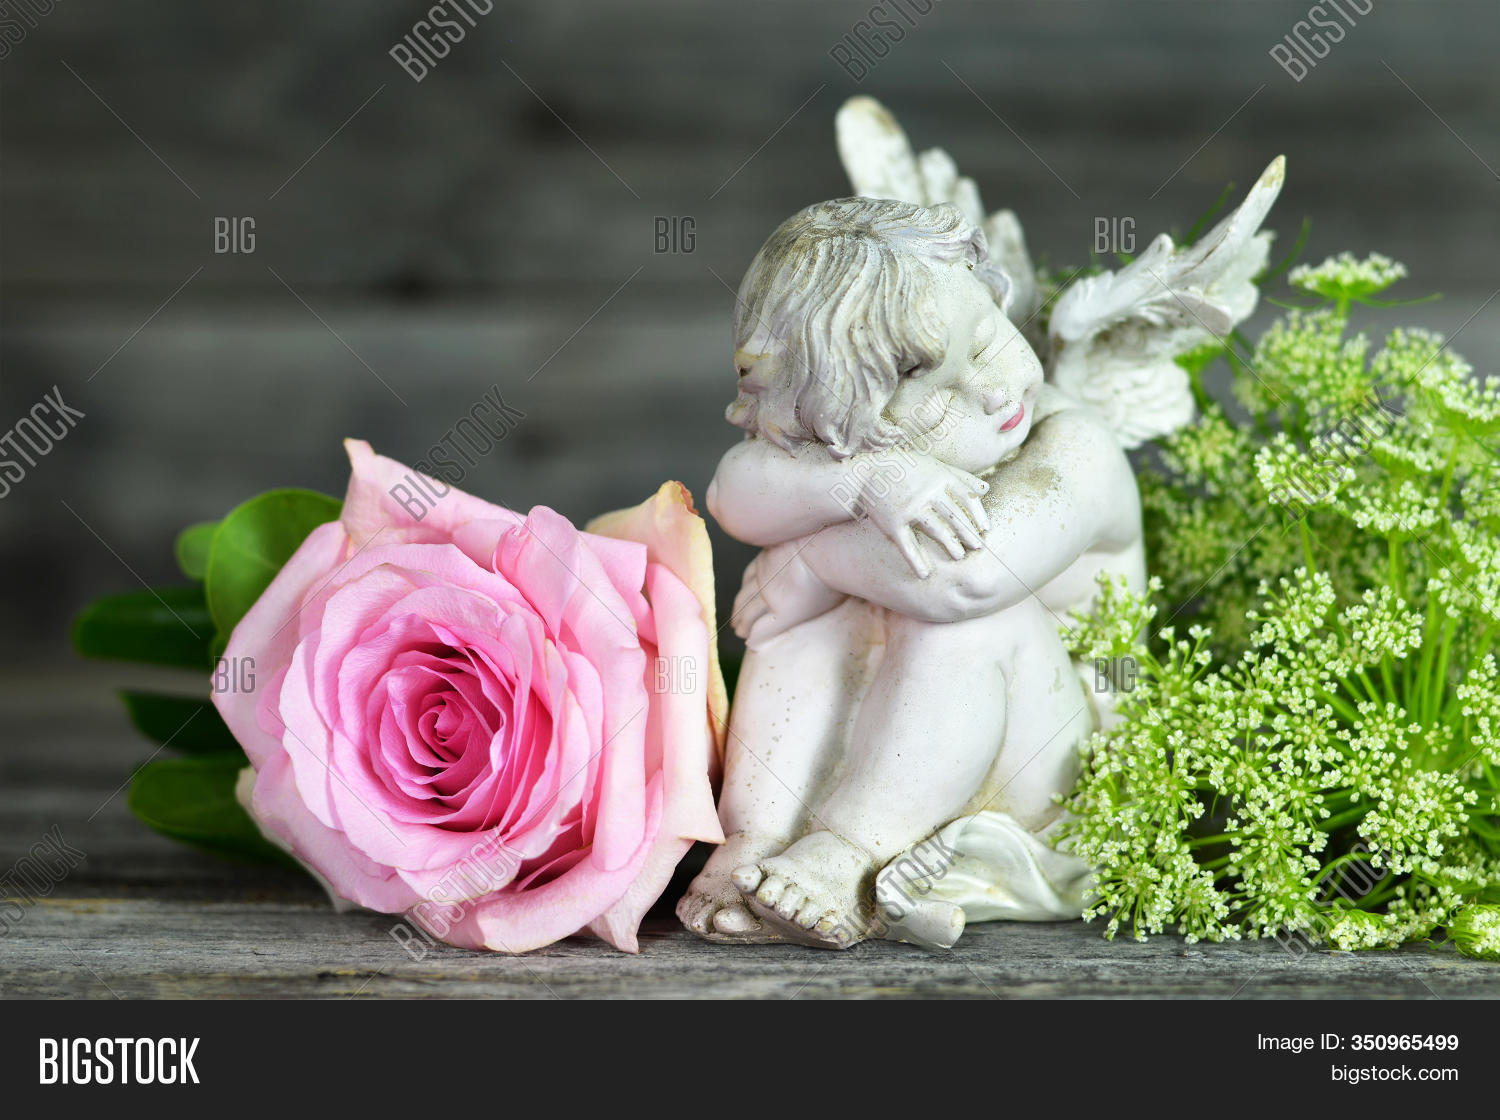 Guardian Angel Pink Image Photo Free